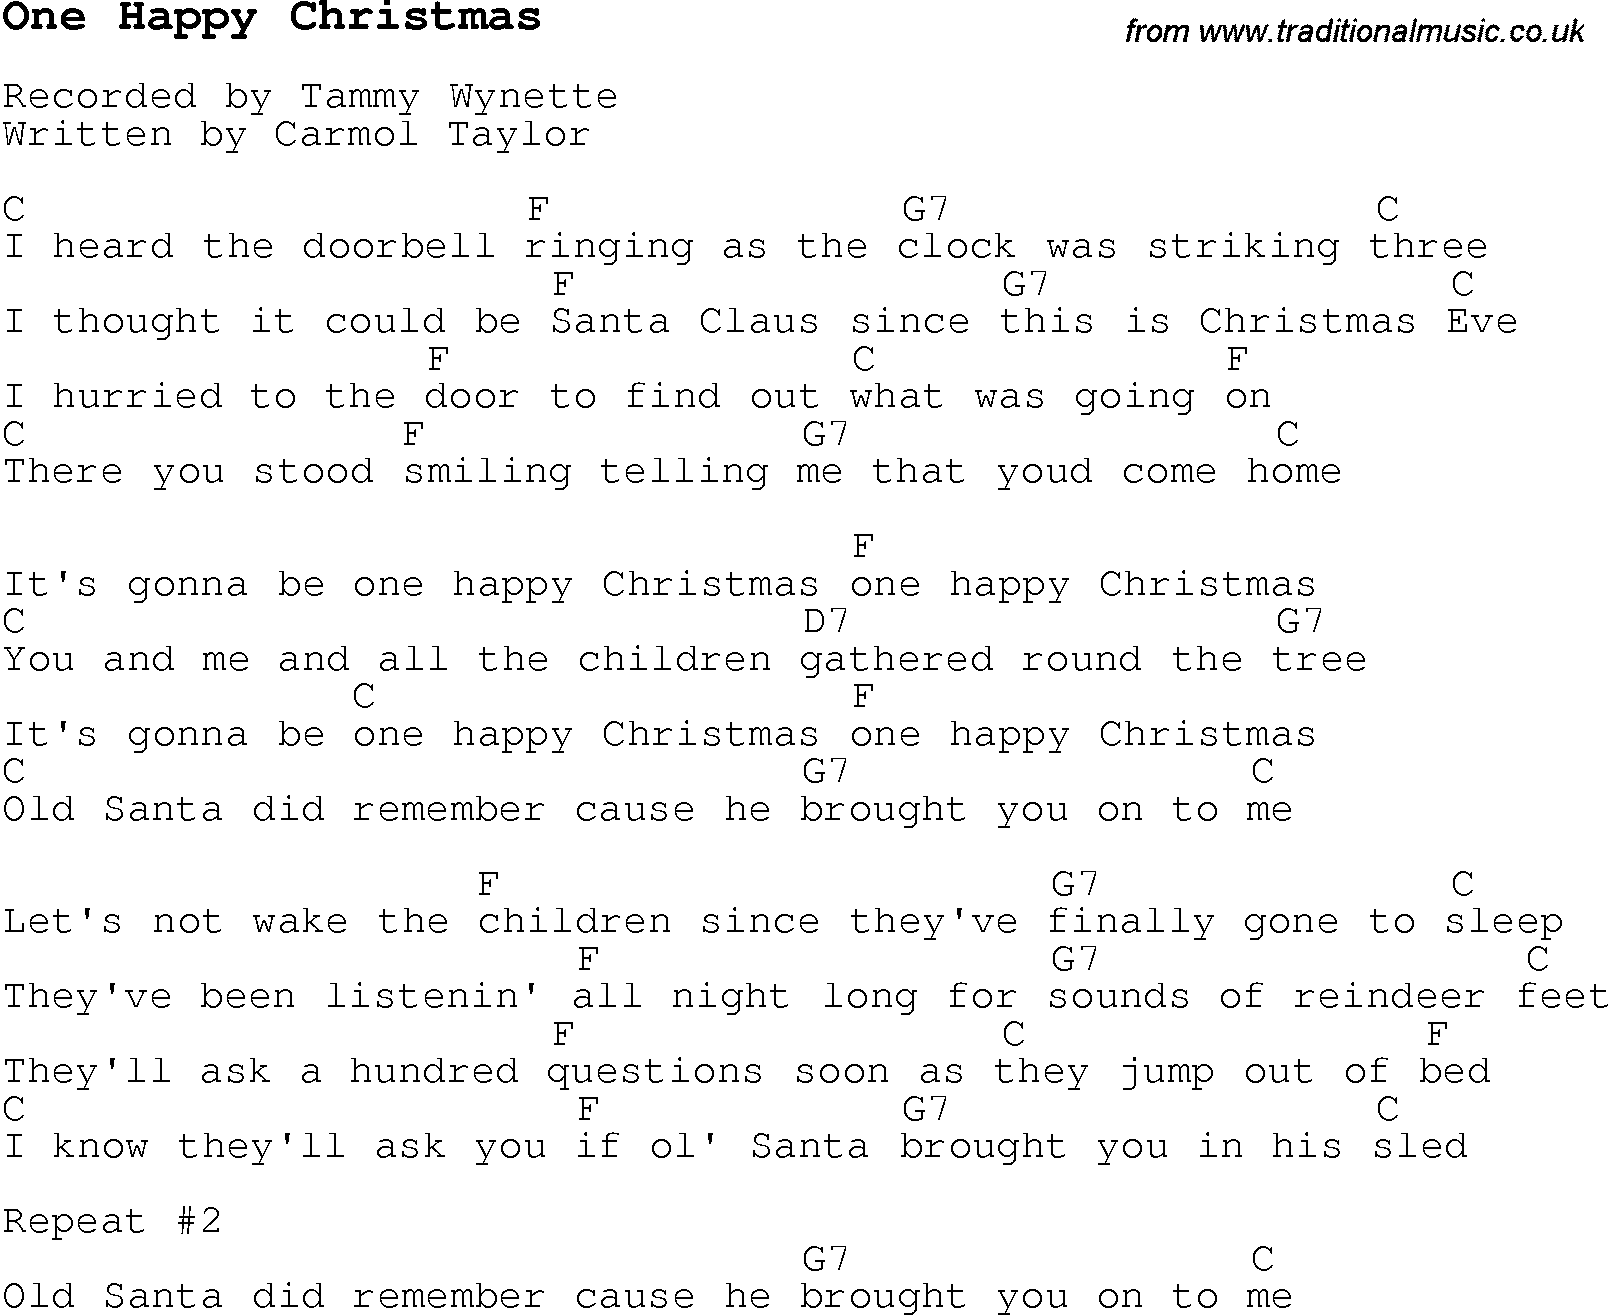 Christmas Carol/Song lyrics with chords for One Happy Christmas